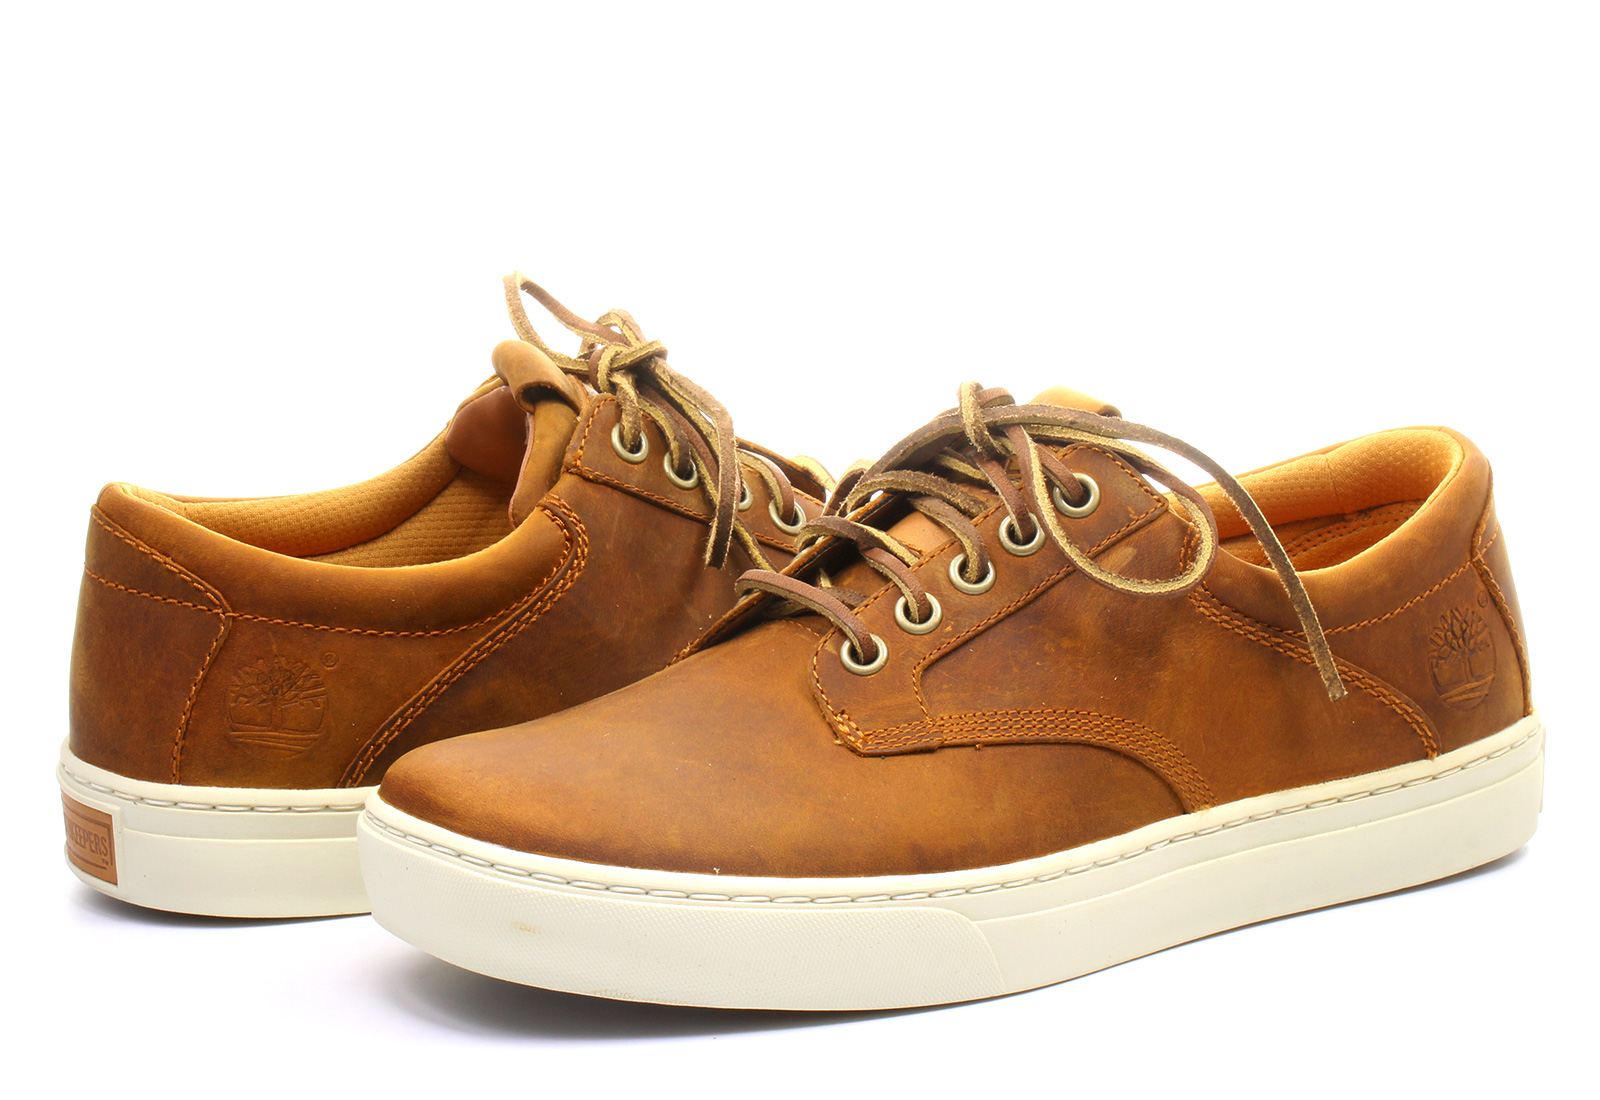 Timberland Shoes Leather Oxford